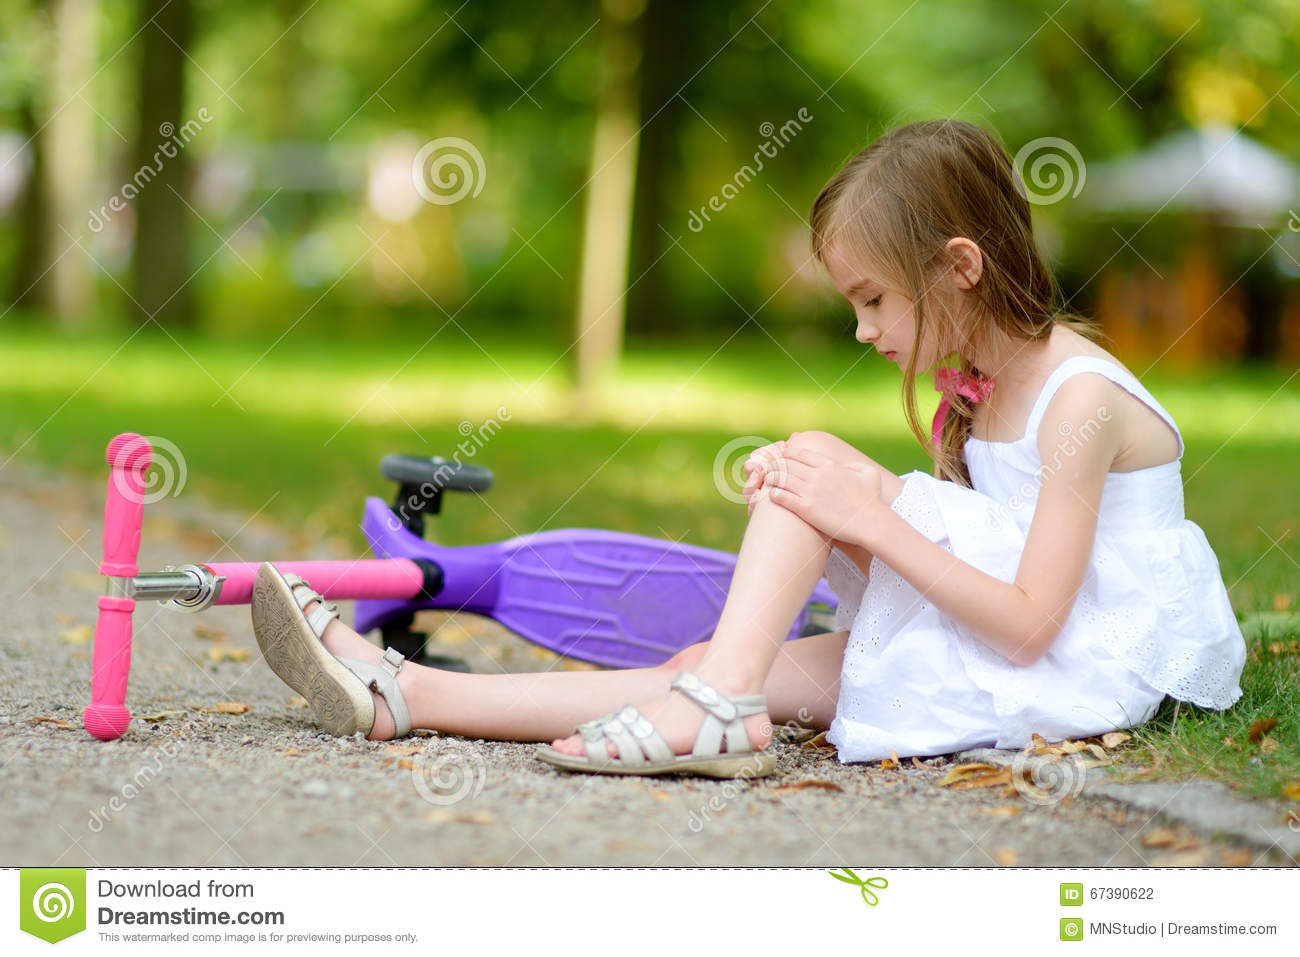 Sitting ground the girl on